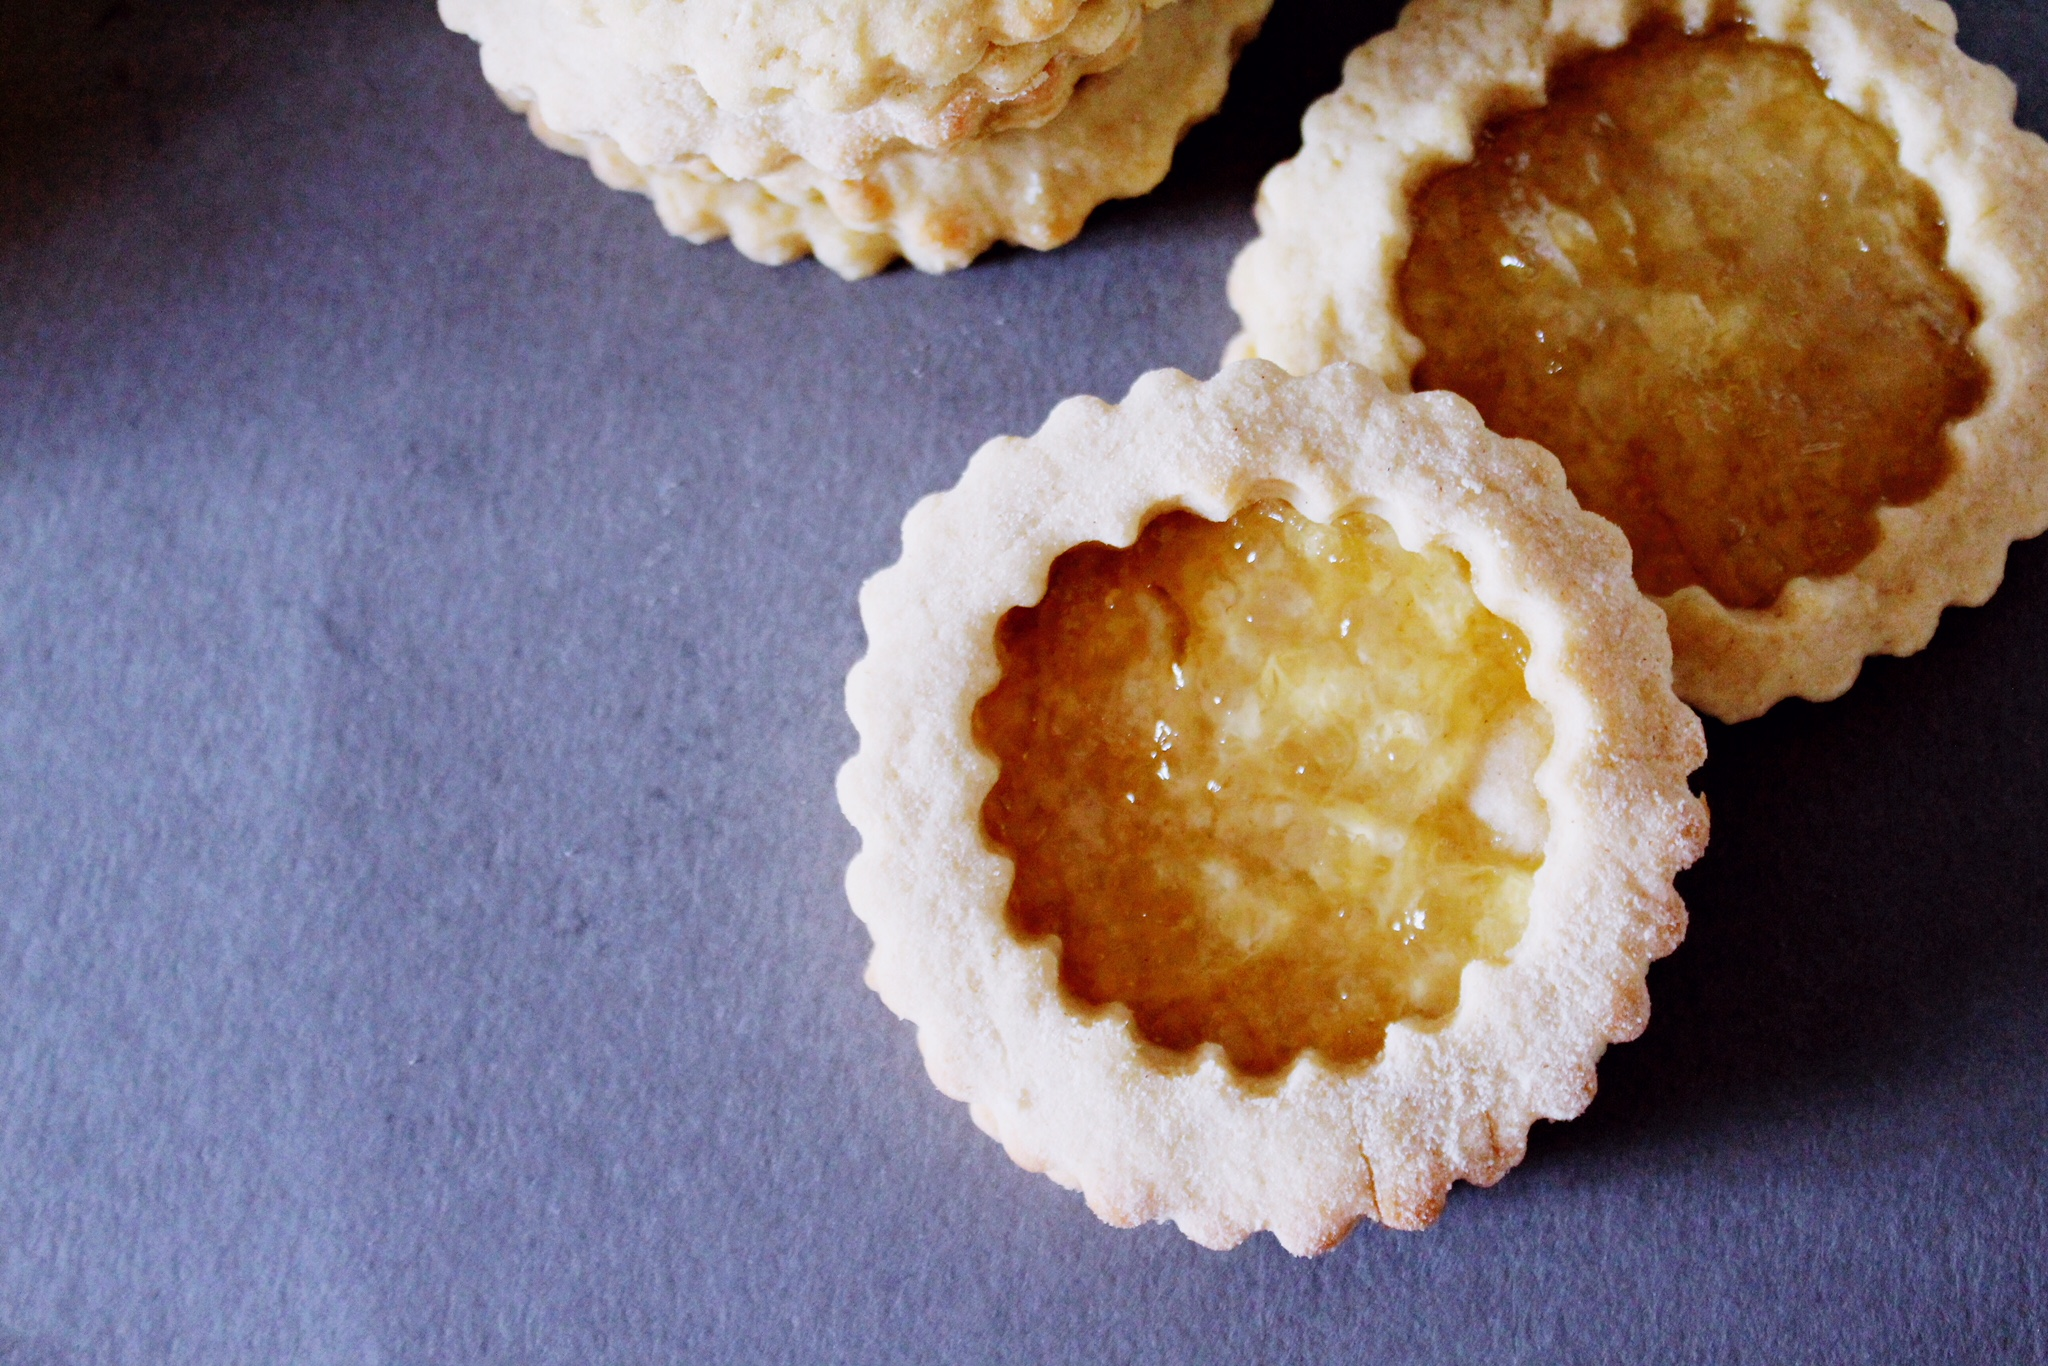 Homemade Lemon Linzer Cookies